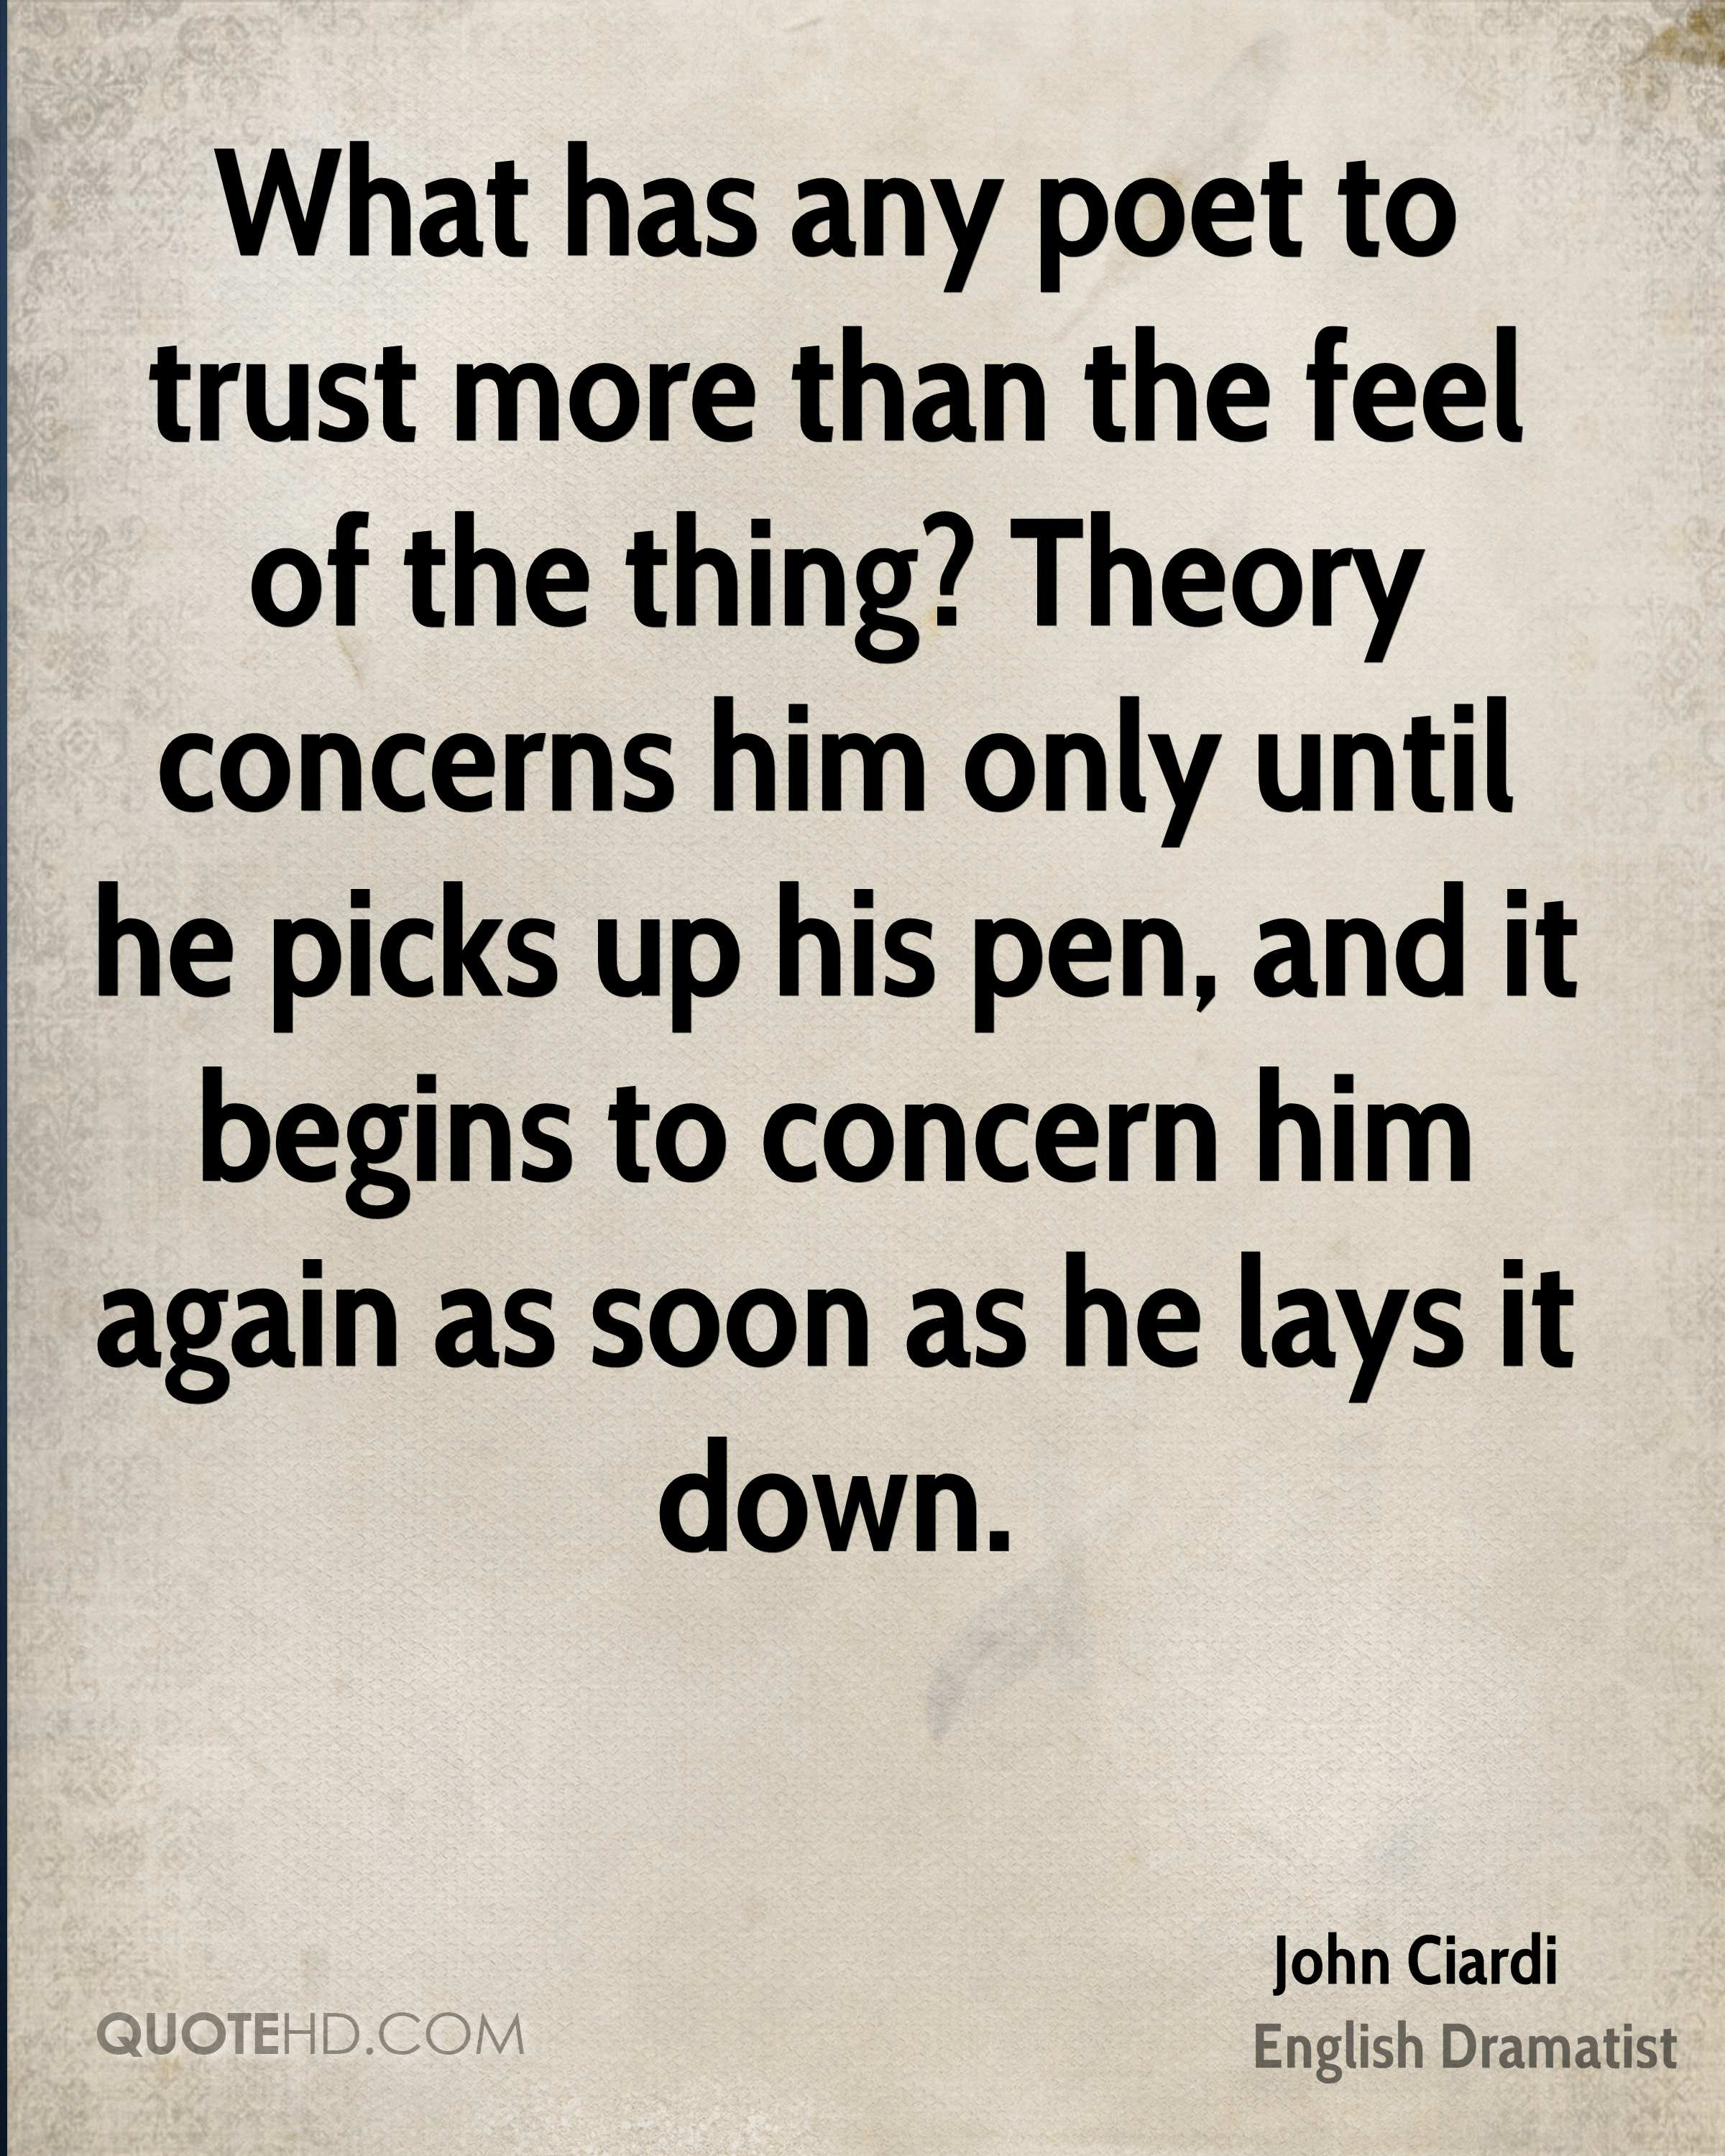 What has any poet to trust more than the feel of the thing? Theory concerns him only until he picks up his pen, and it begins to concern him again as soon as he lays it down.